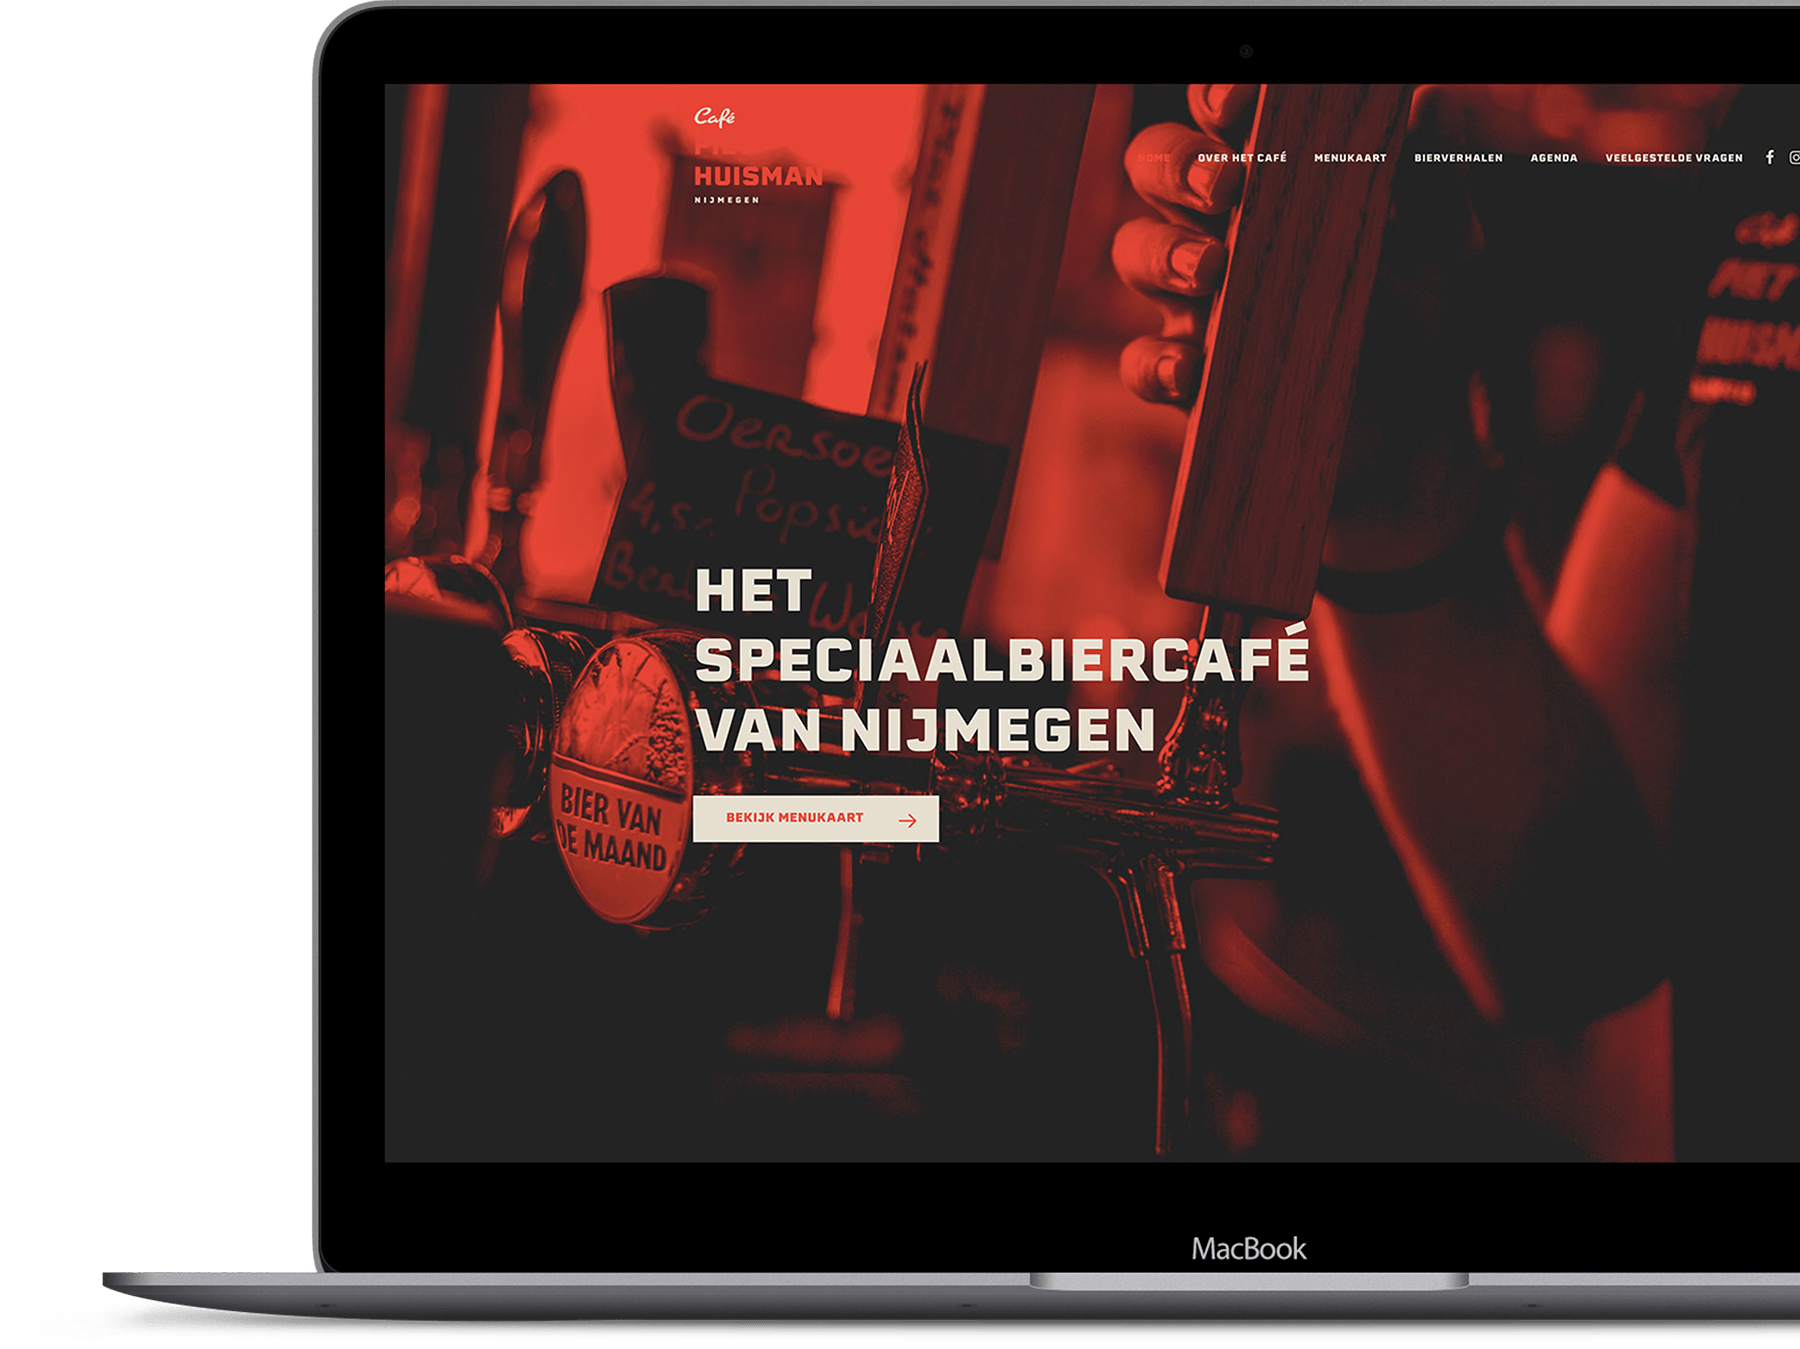 Café Piet Huisman - Website desktop